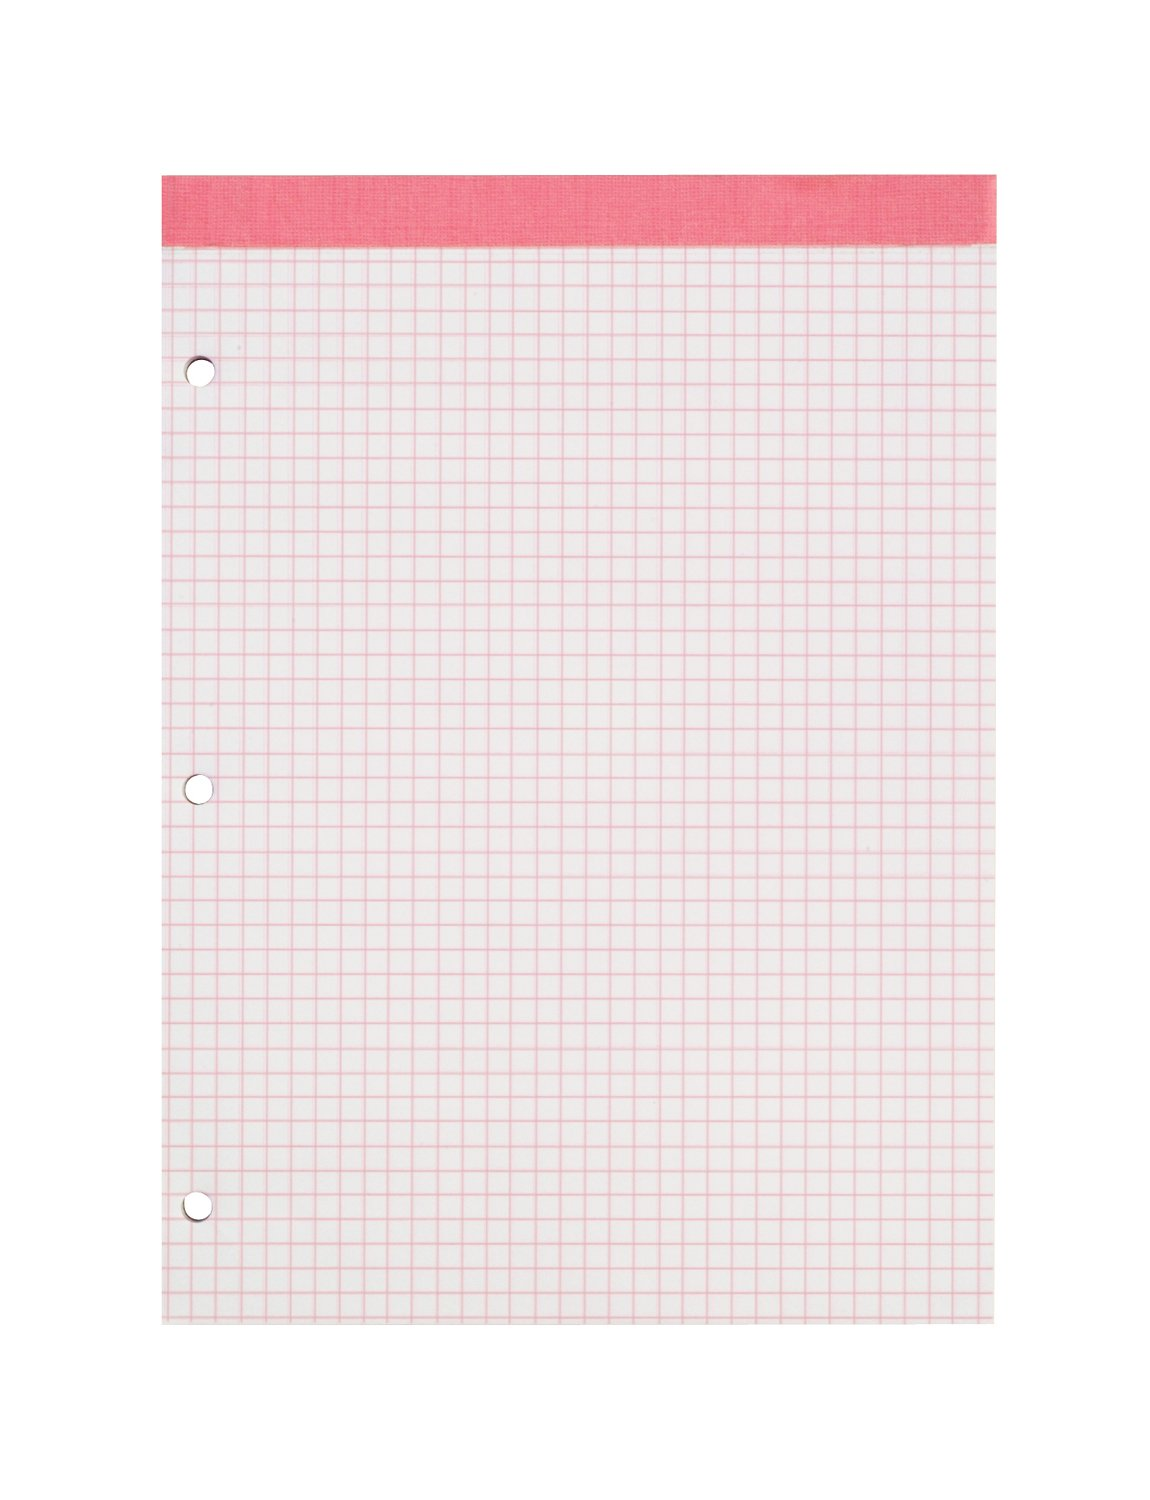 // In 1 Each Pink Ruling 4 sq Ampad 20-287 100 Sheets Per Pad Letter Size Evidence Dual Pads